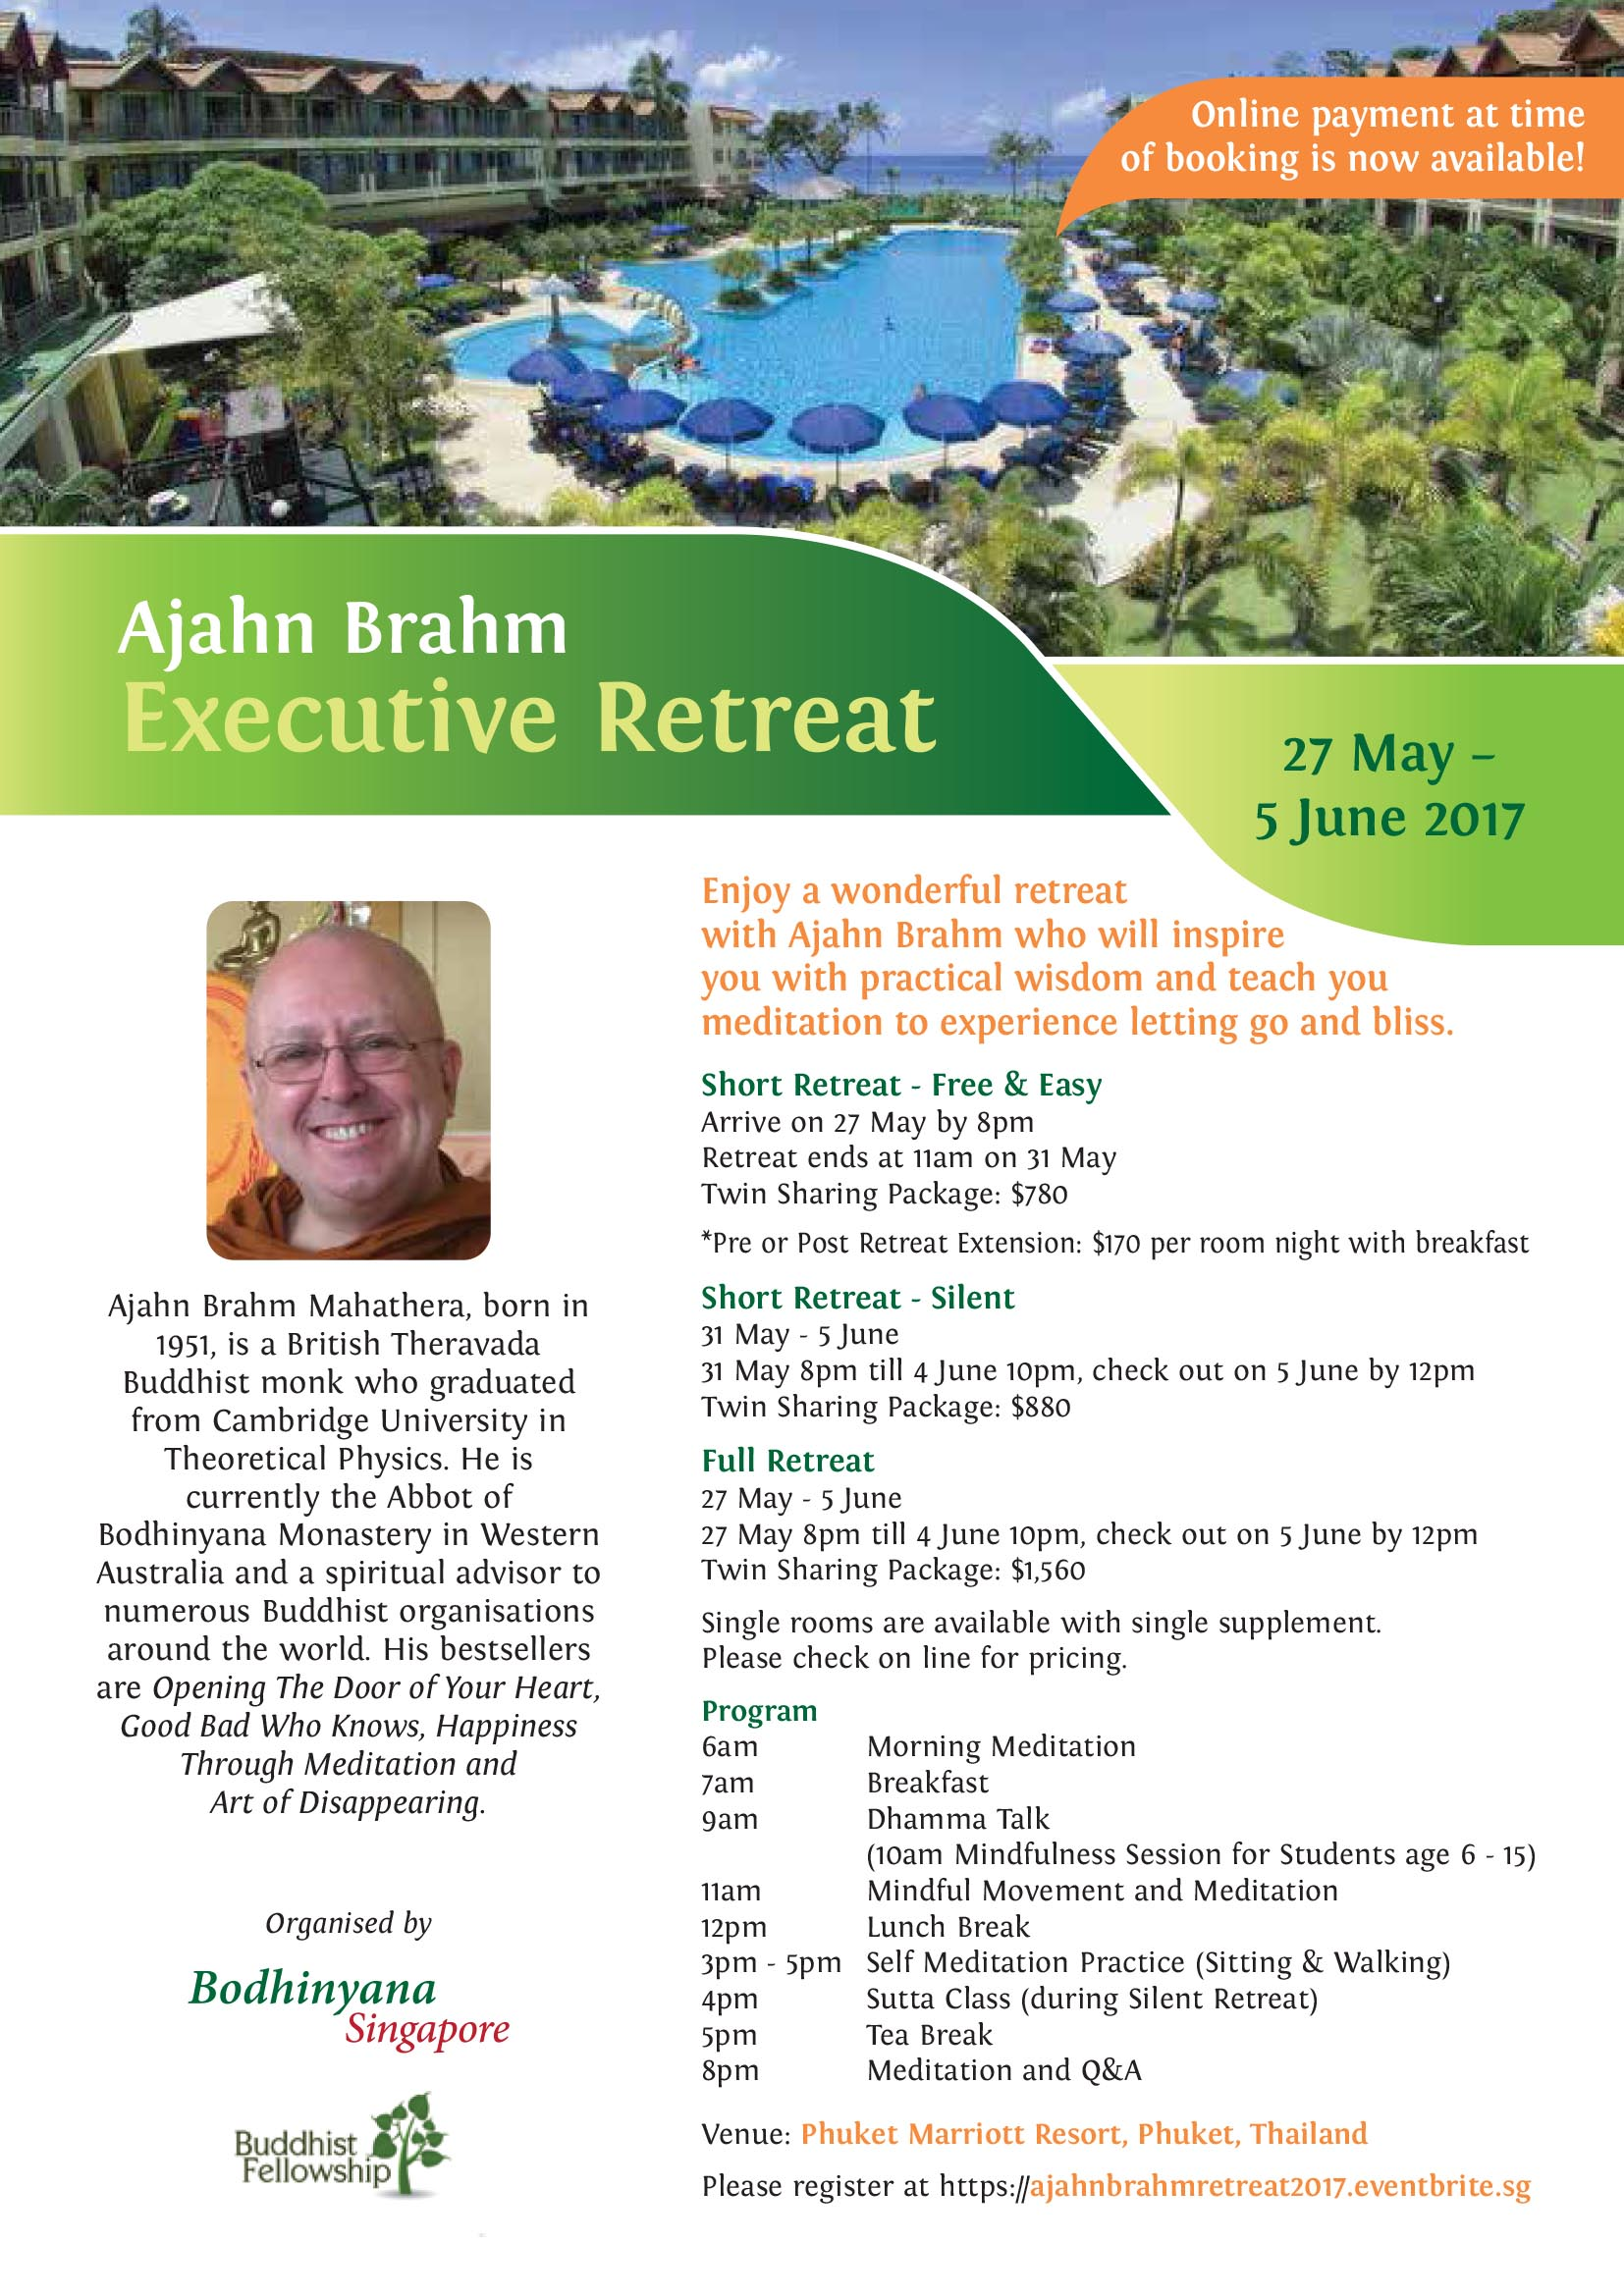 Ajahn Brahm Retreat